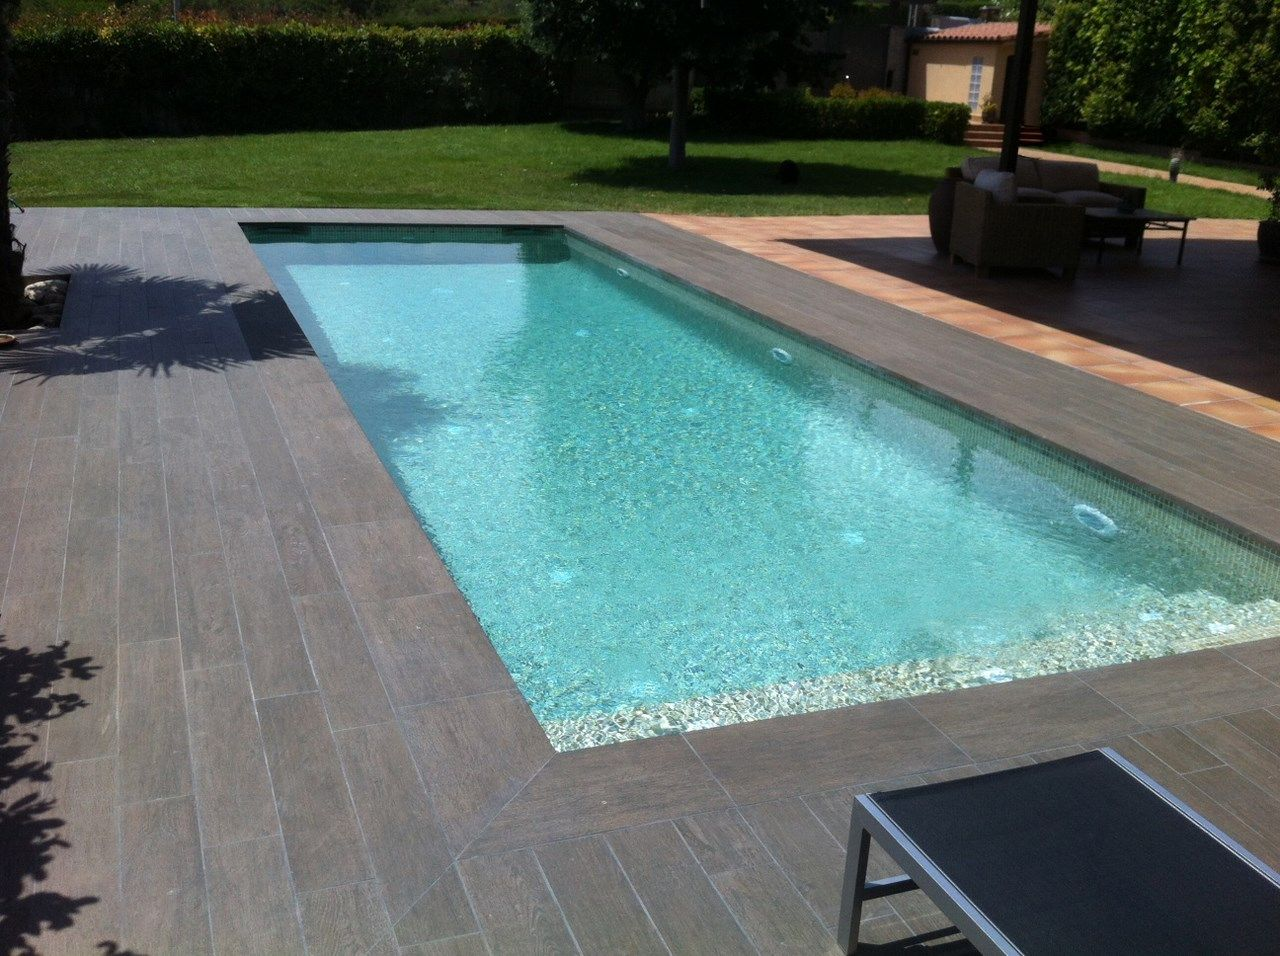 Piscina gres porcelanico madera buscar con google for Borde piscina hormigon